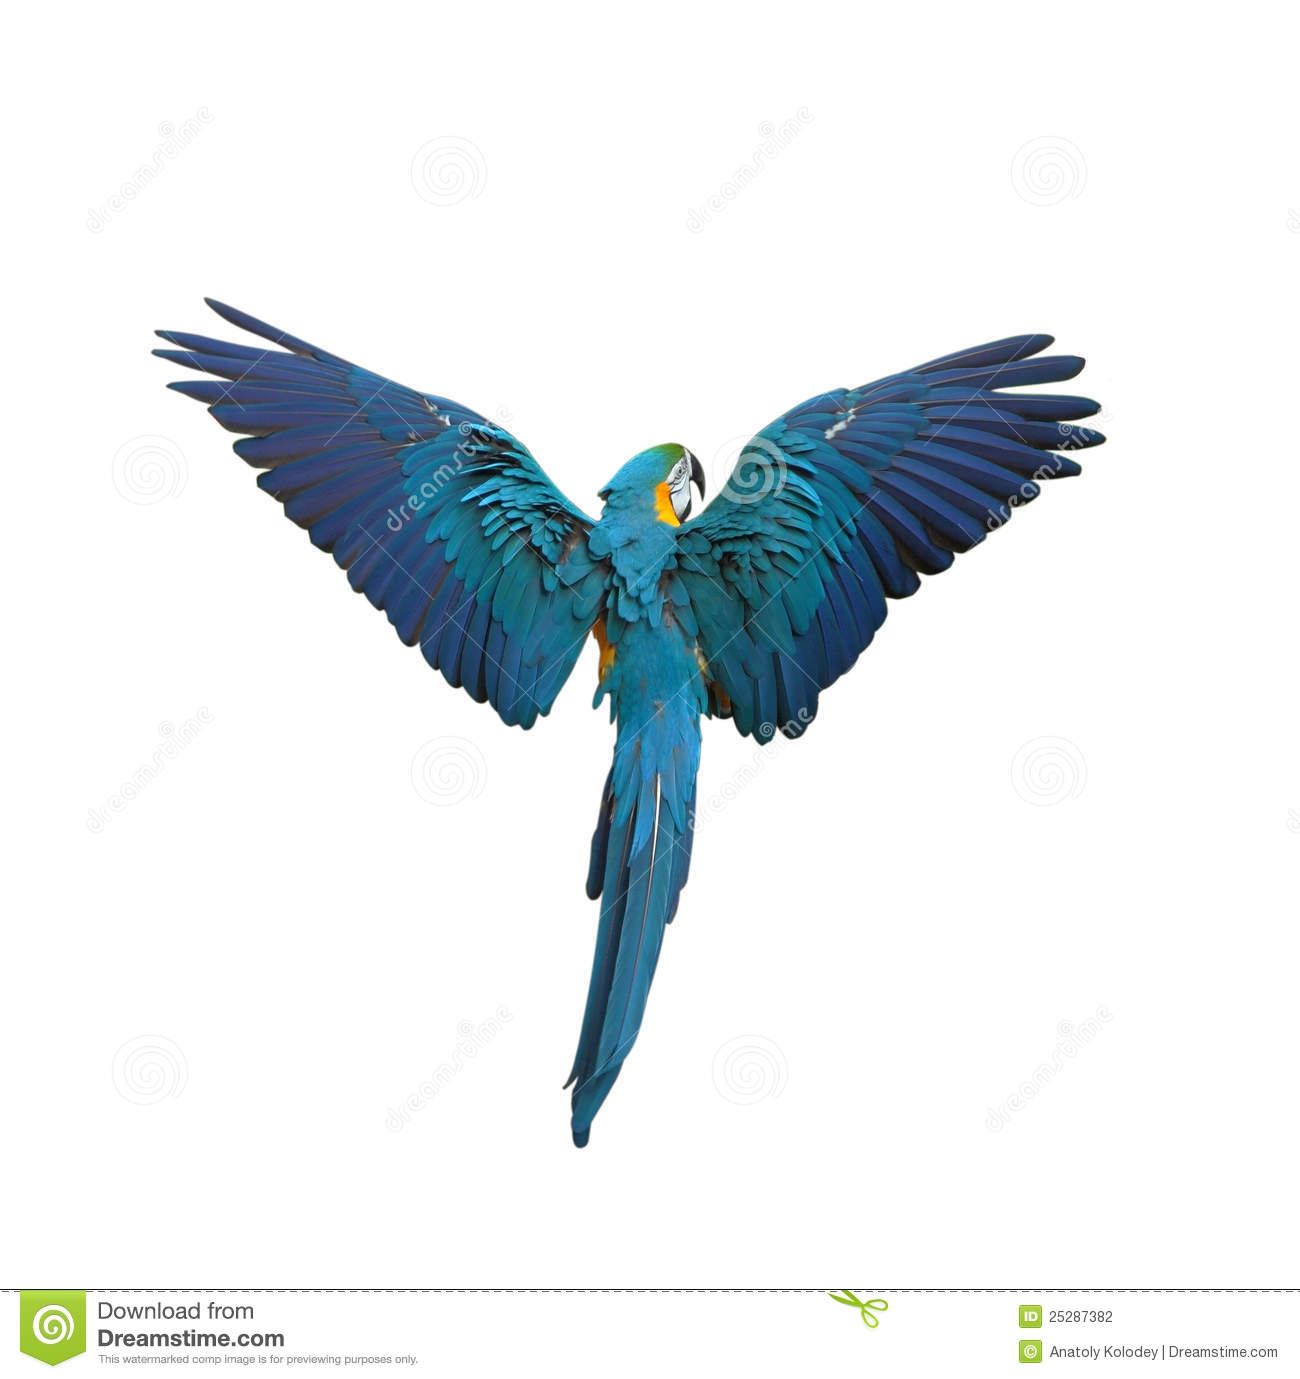 Flying Bird Sketch Stock Images RoyaltyFree Images